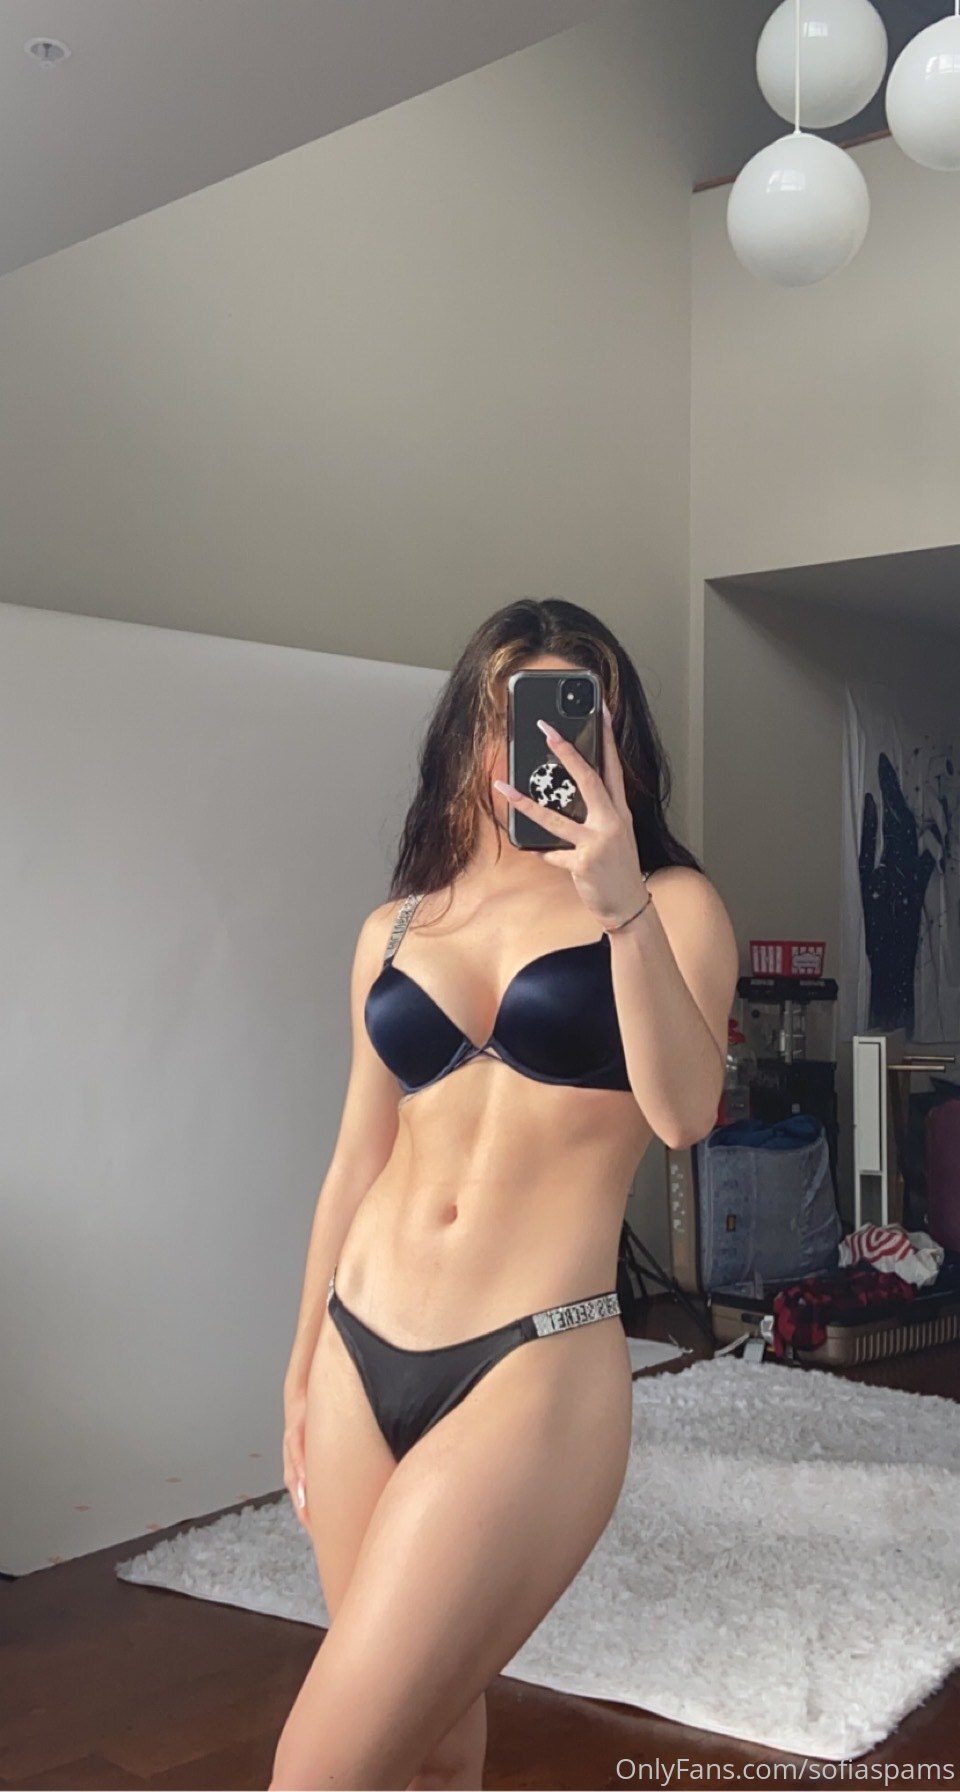 Sofiaspams Onlyfans Nude photo 21